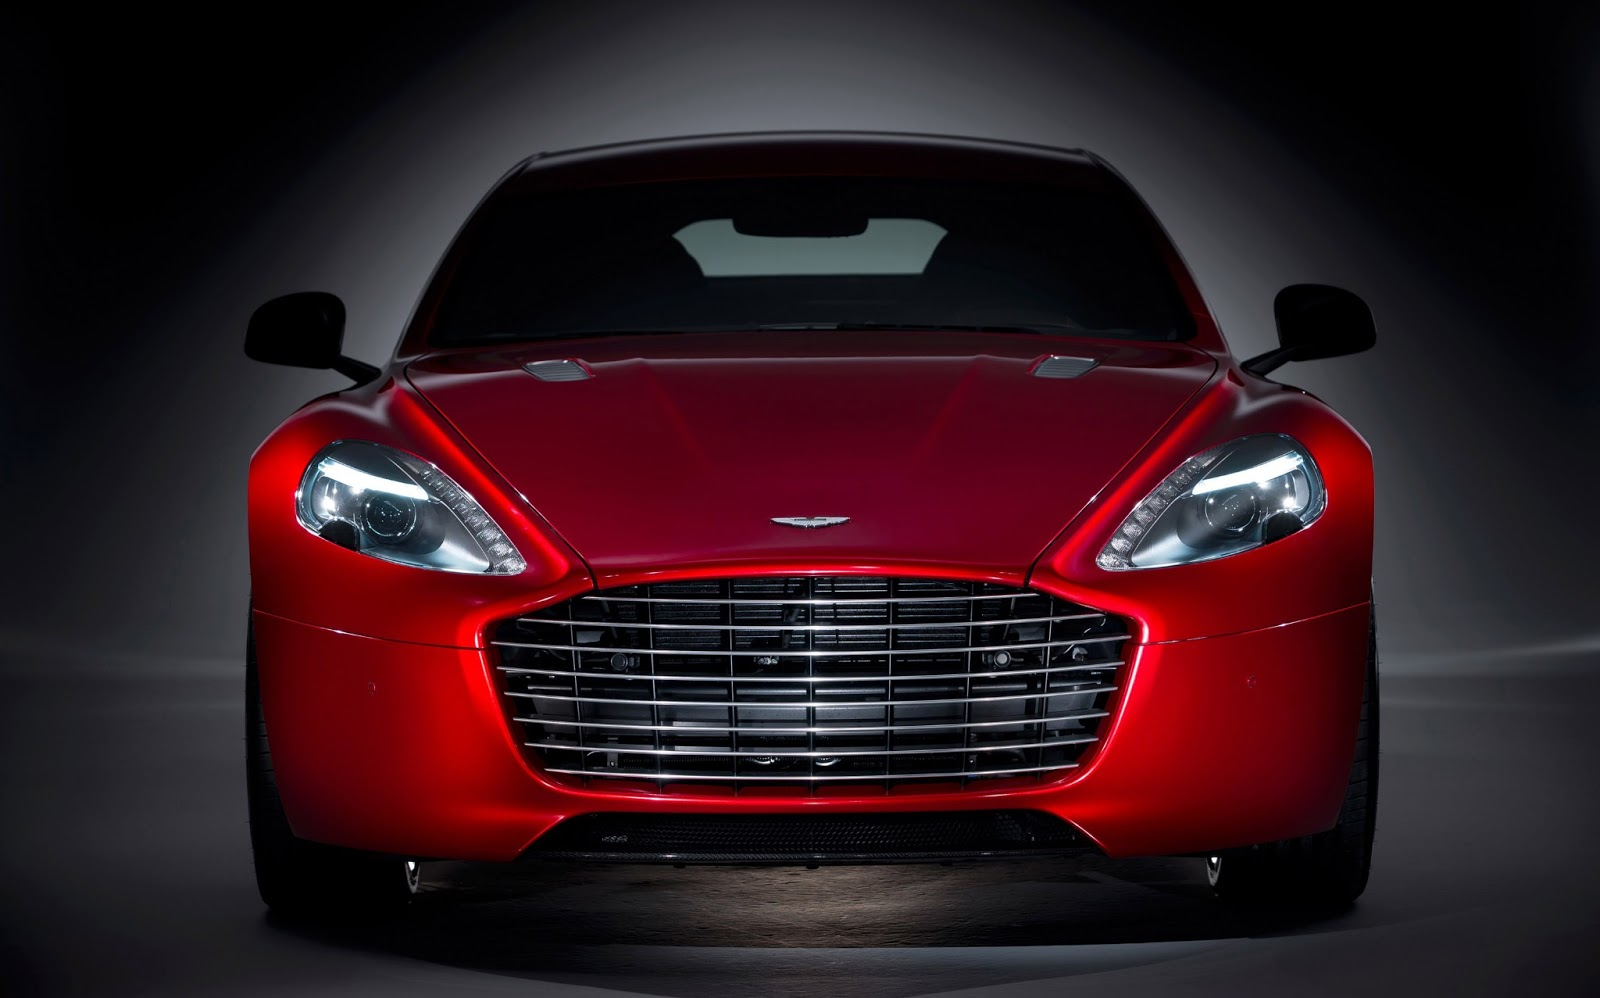 2014 Aston Martin Rapide S Wallpaper HD For Android